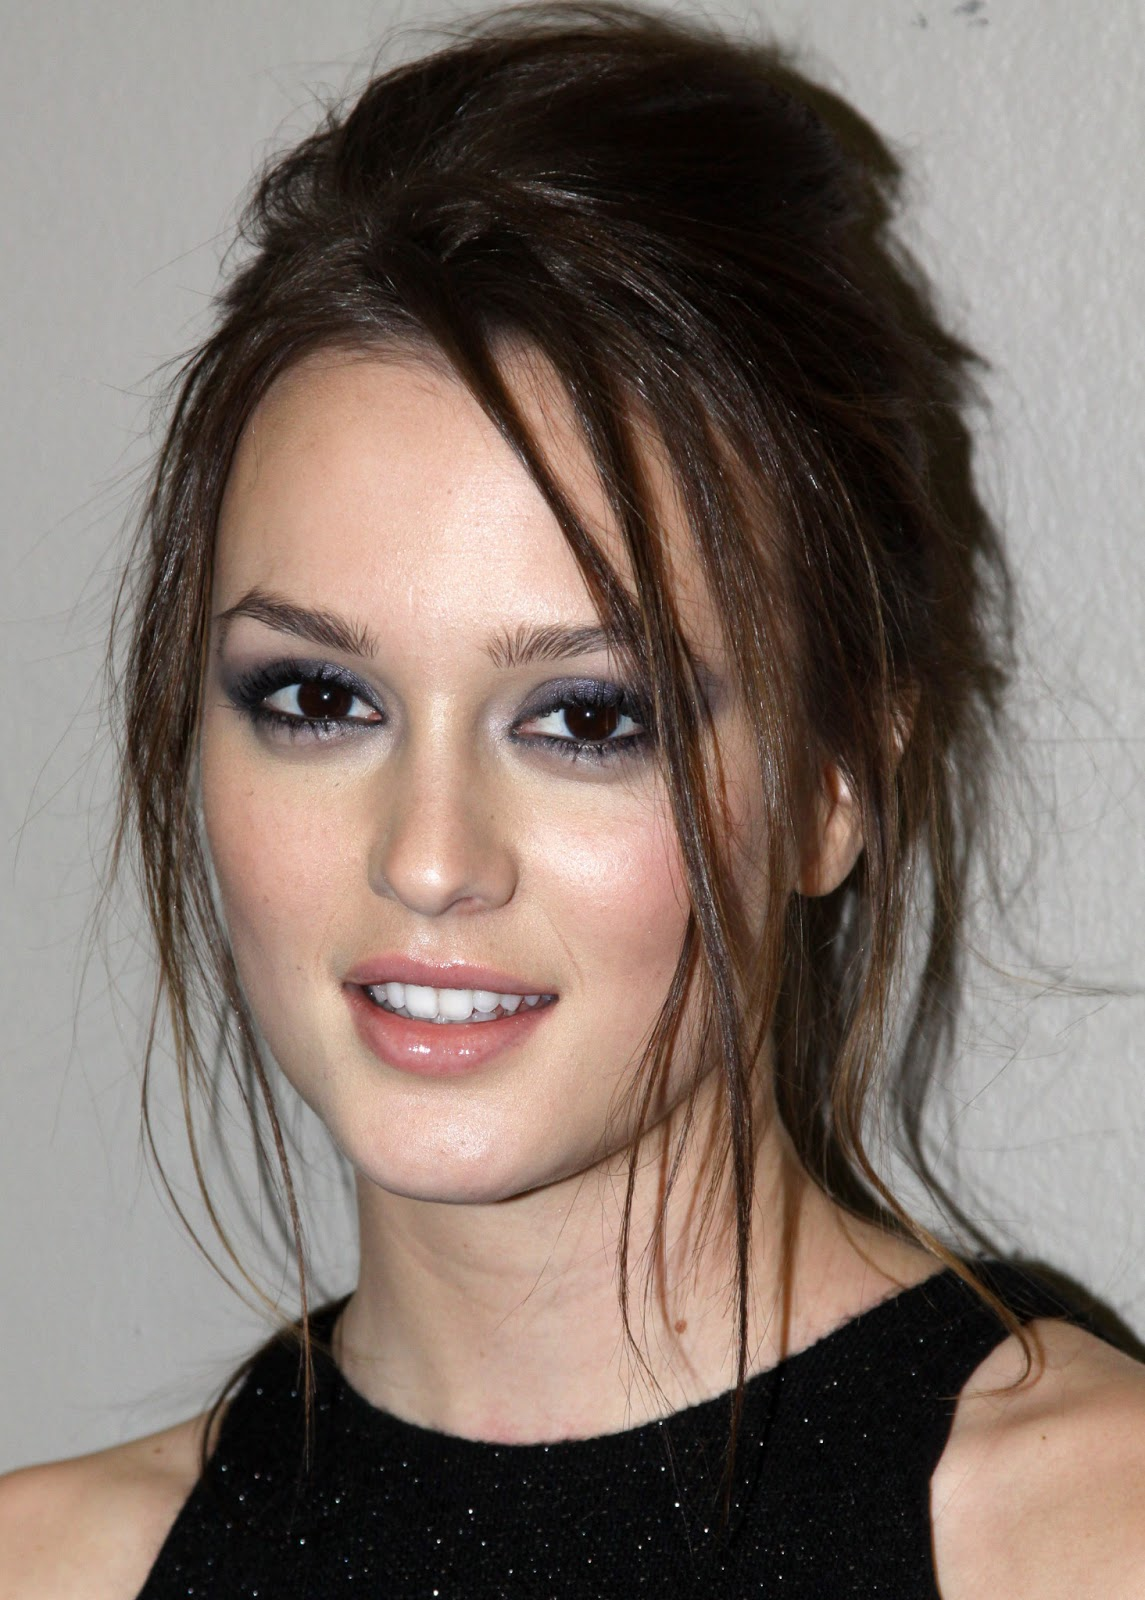 Leighton Meester Images Fashion Magazine Hd Wallpaper And: MrHDwallpaper: Leighton Meester Hot Hd Wallpapers